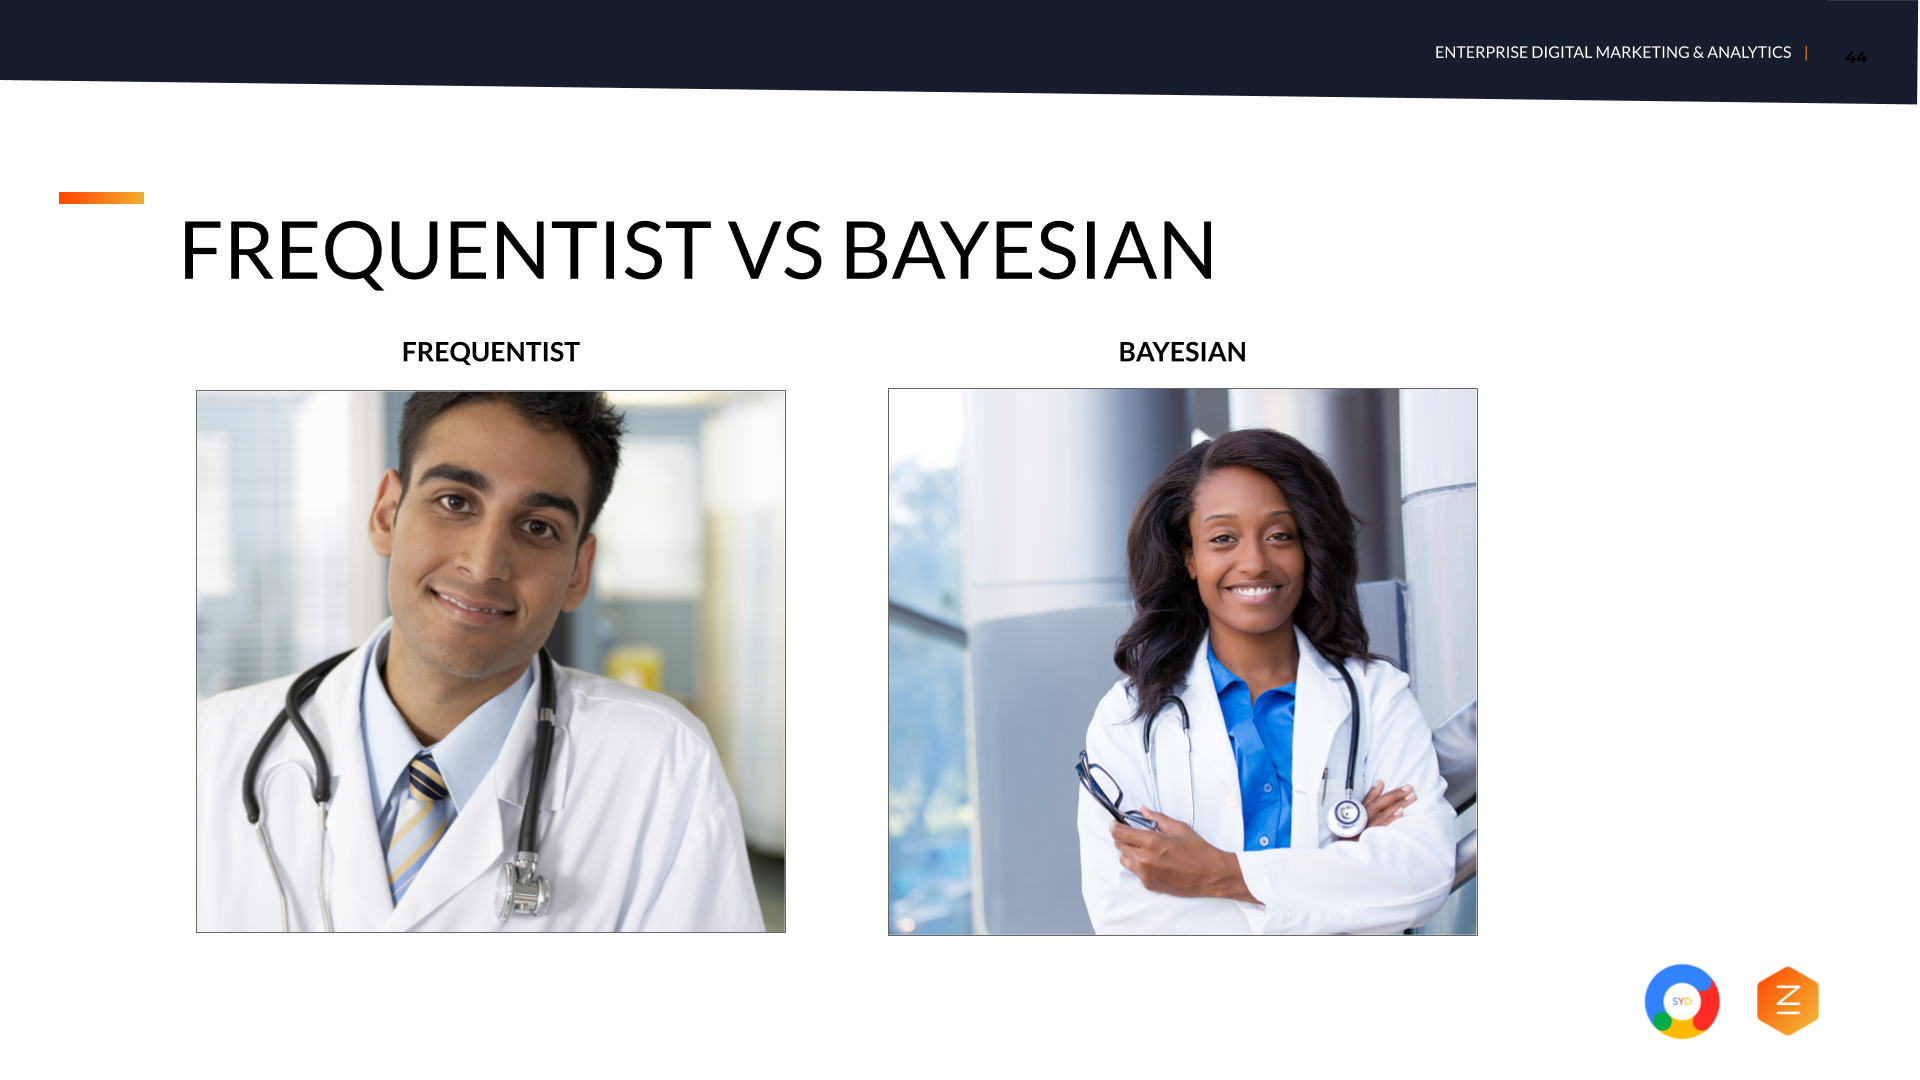 Frequentist vs Bayesian - Google Optimize Google Marketing Platform